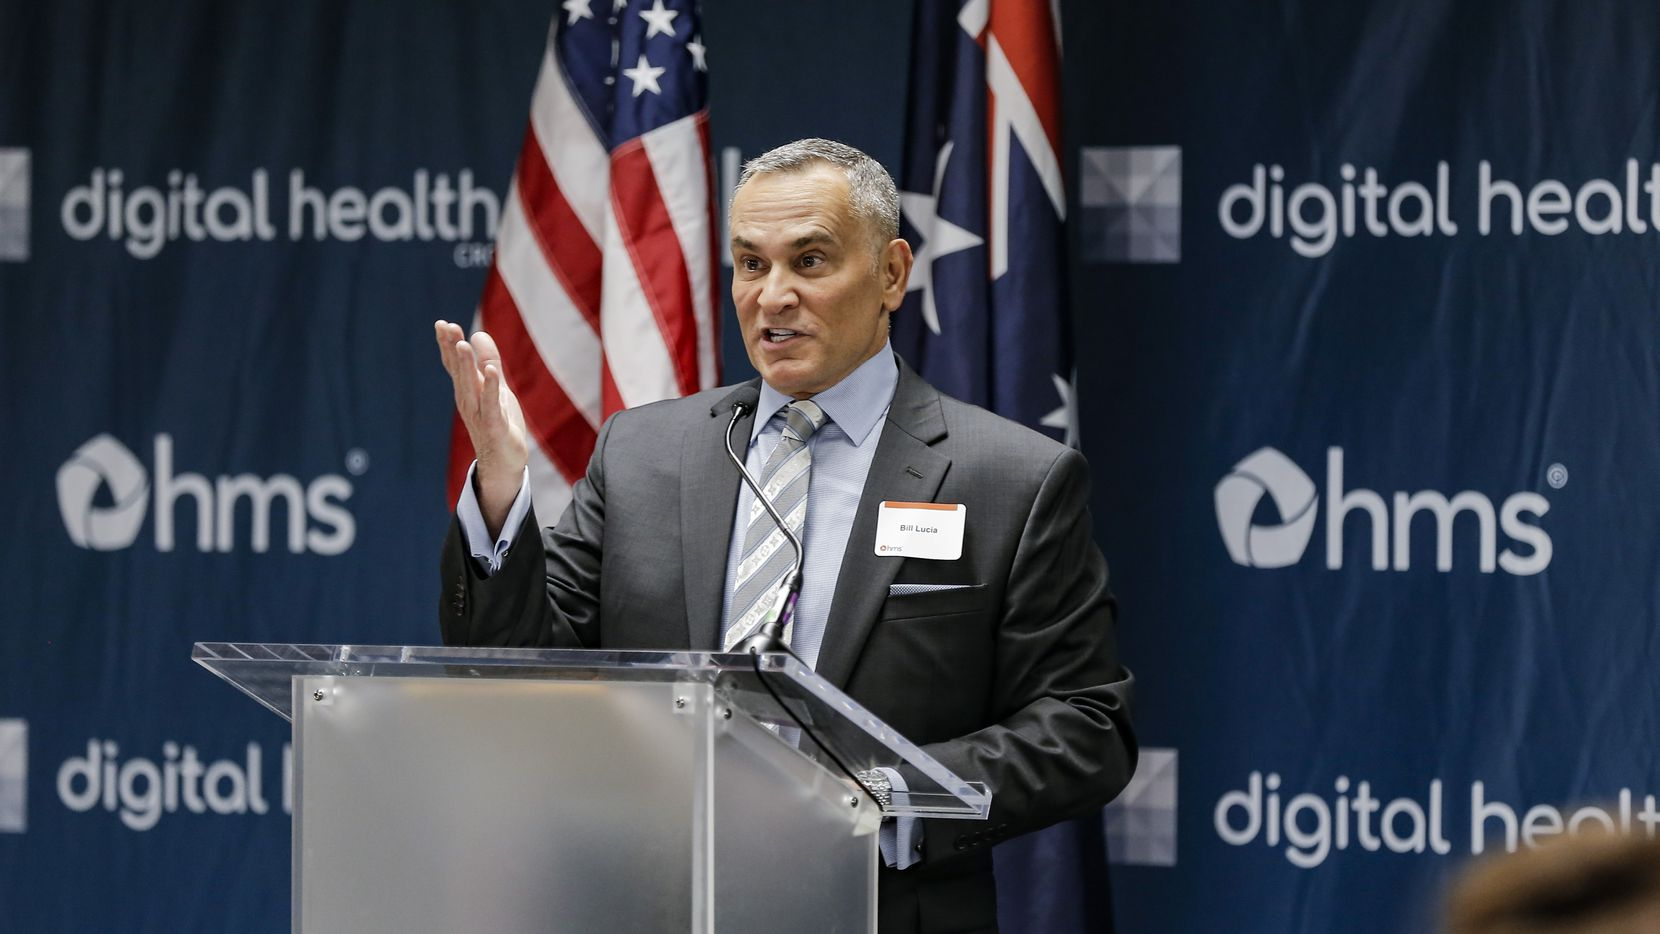 HMS chairman and CEO Bill Lucia spoke at a news conference last year to announce a partnership with researchers at Stanford and SMU to fight opioid addiction, hospital readmittance and other challenges that drive up health care costs.